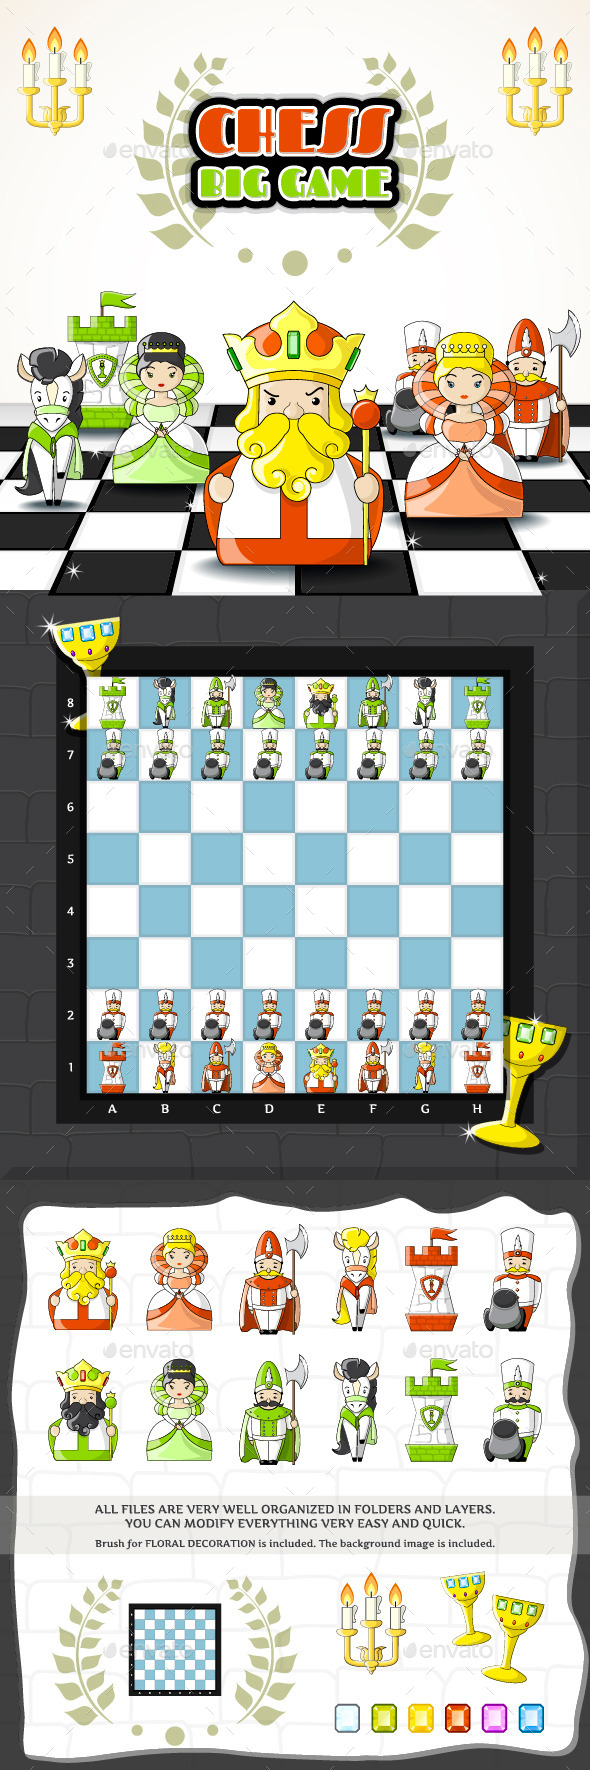 2D Cute Chess Game Kit